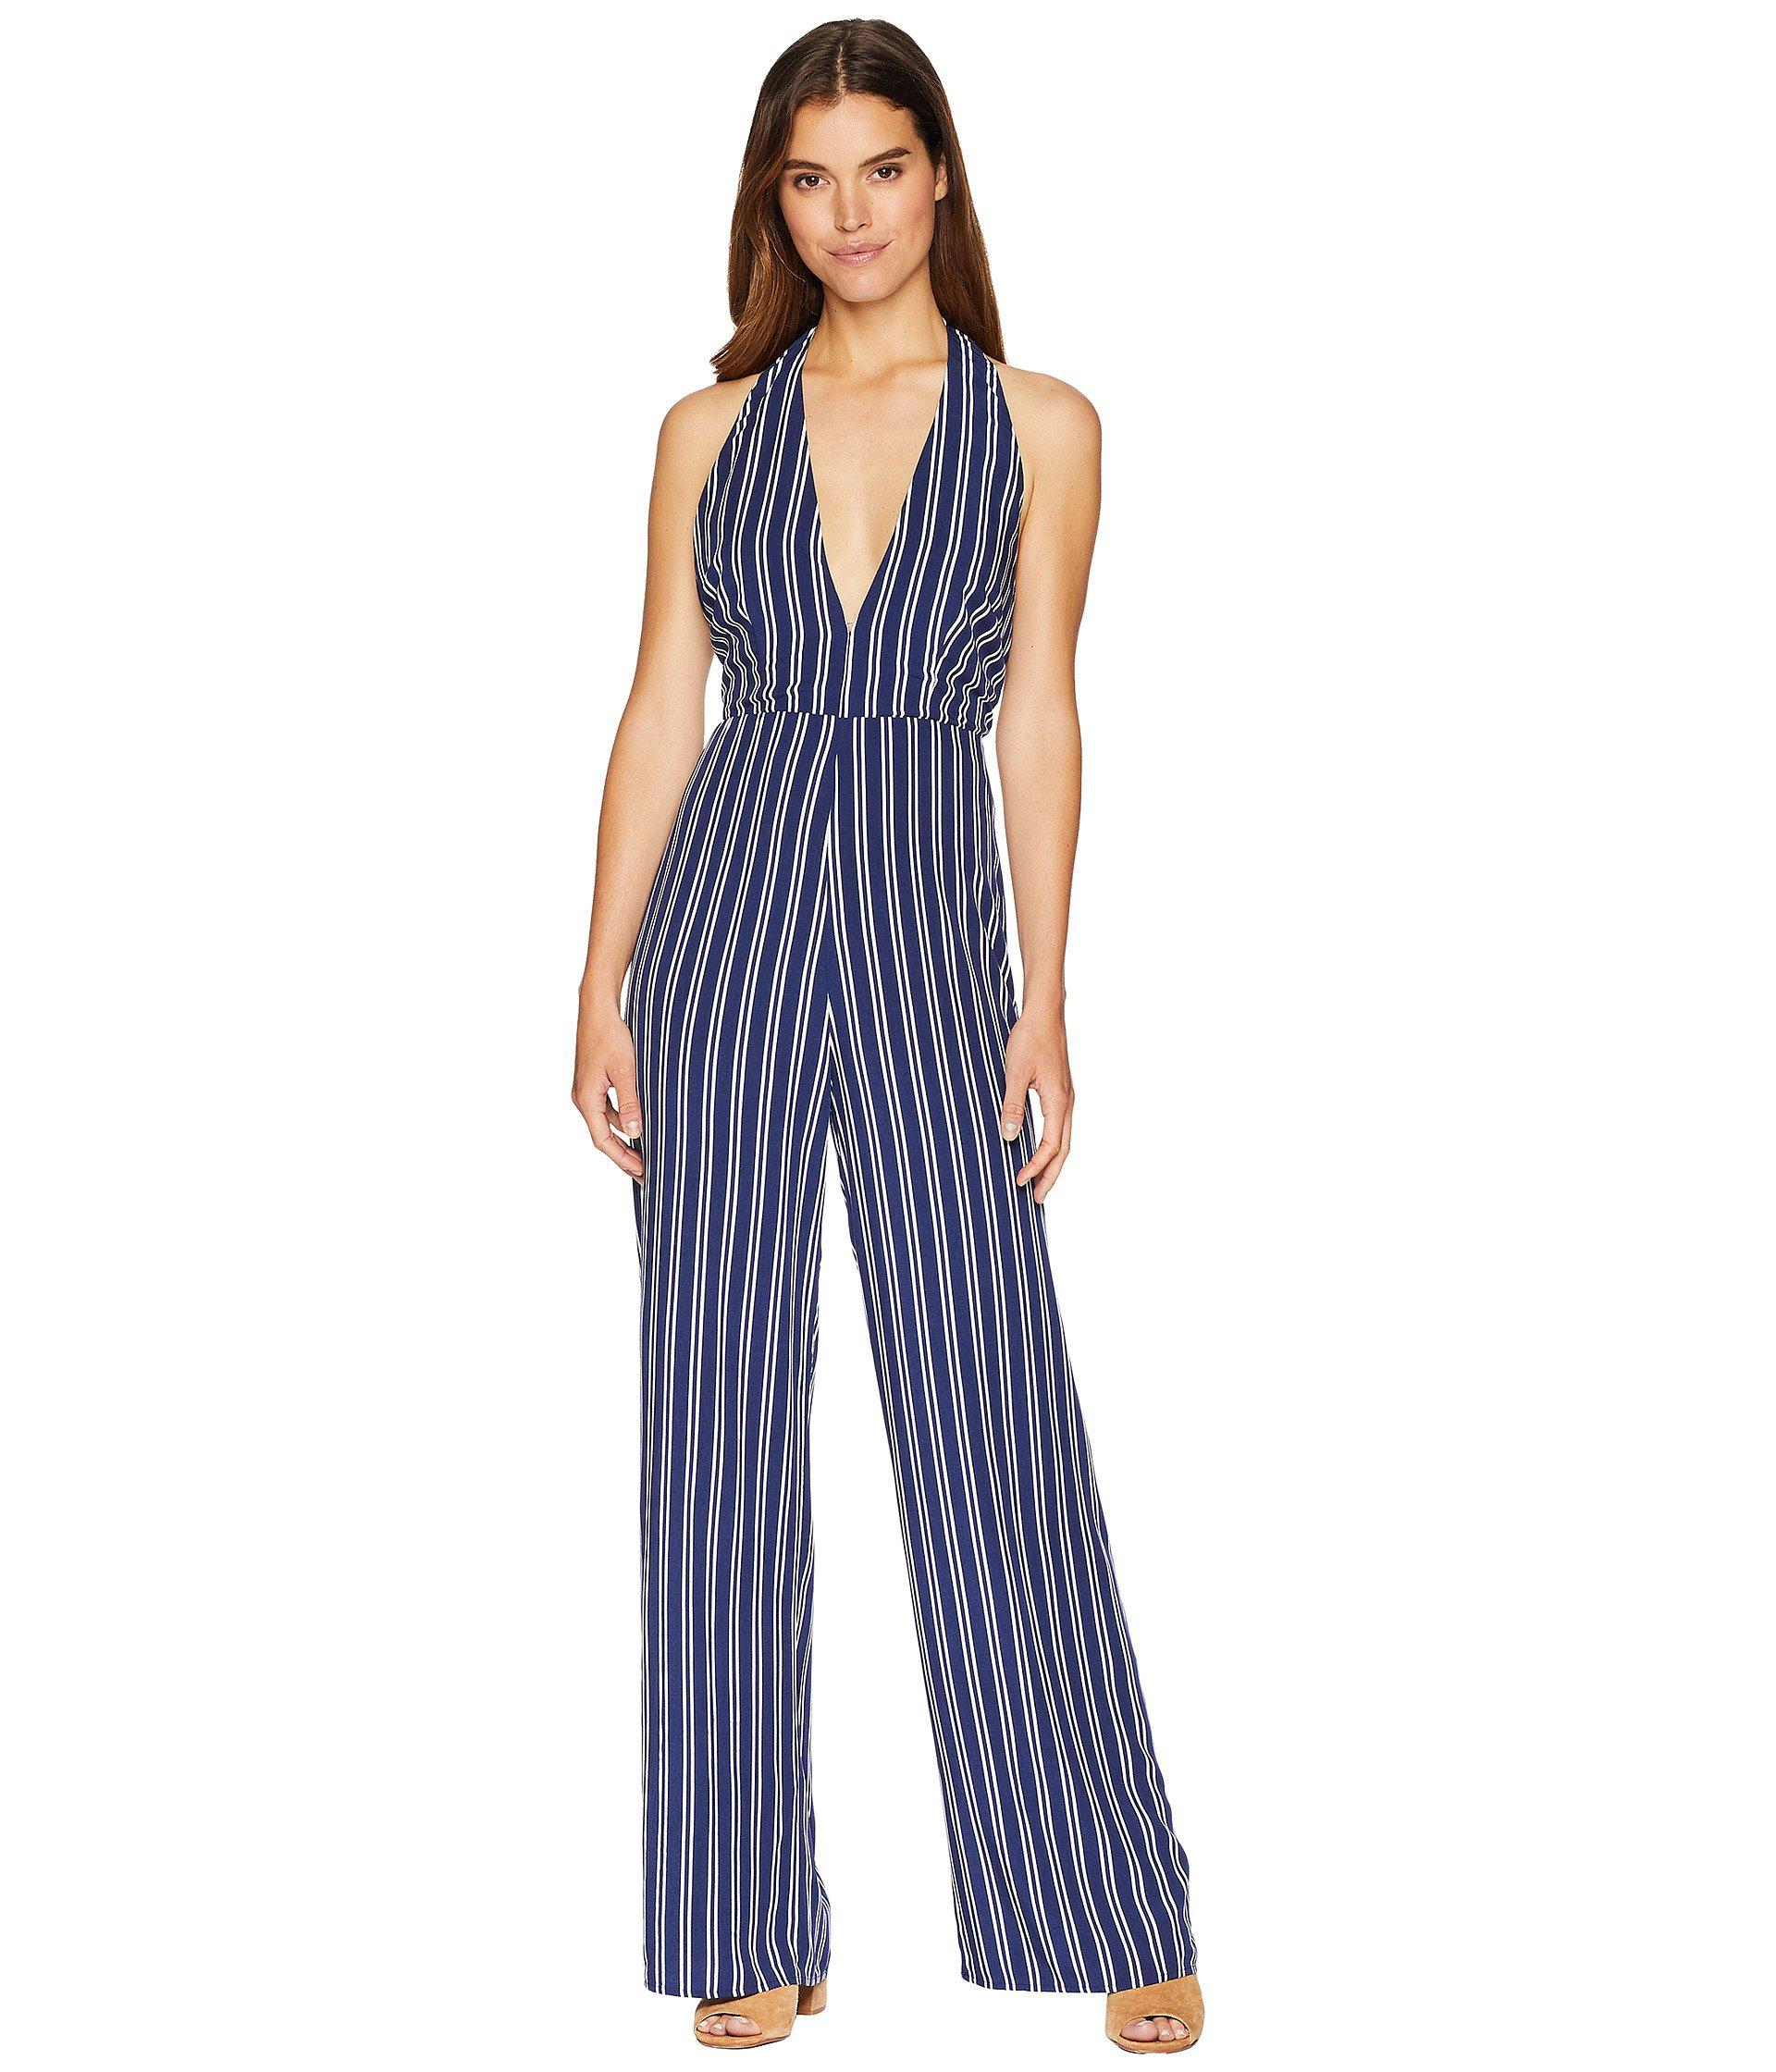 5432f5101f49 Lyst - Jack BB Dakota All The Way Up Striped Rayon Challis Jumpsuit ...